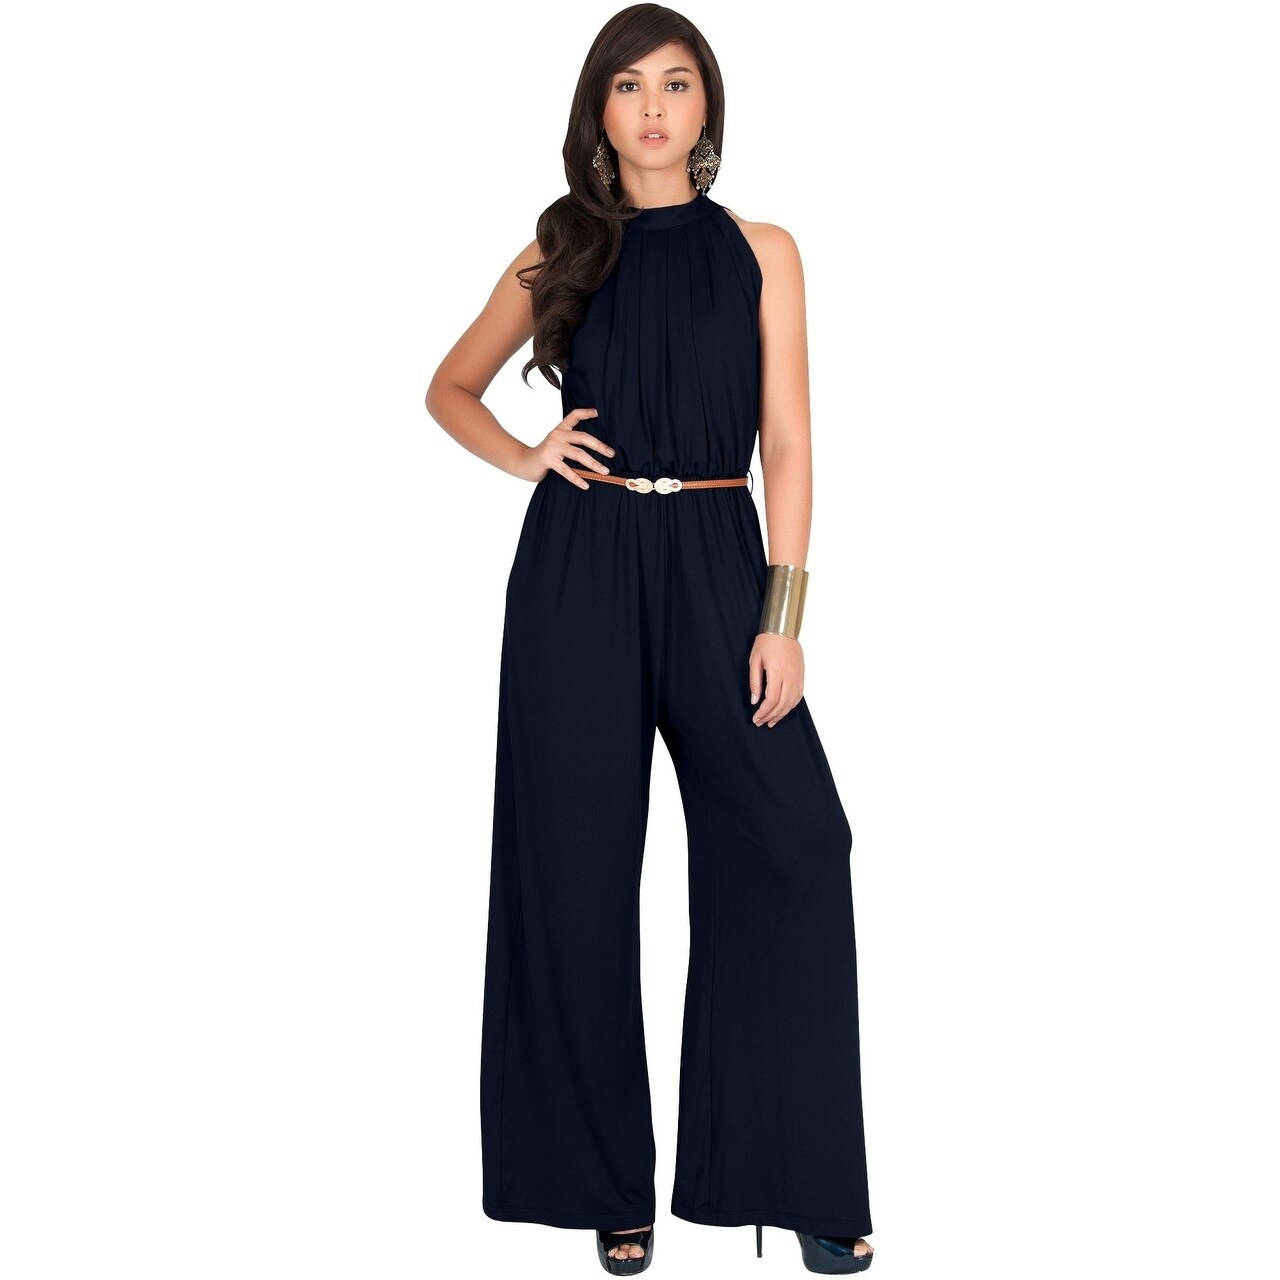 55e5e958e2720 Shop KOH KOH Women Beautiful Sleeveless Halter Neck Casual Work Jumpsuits -  Free Shipping On Orders Over $45 - Overstock - 20680114